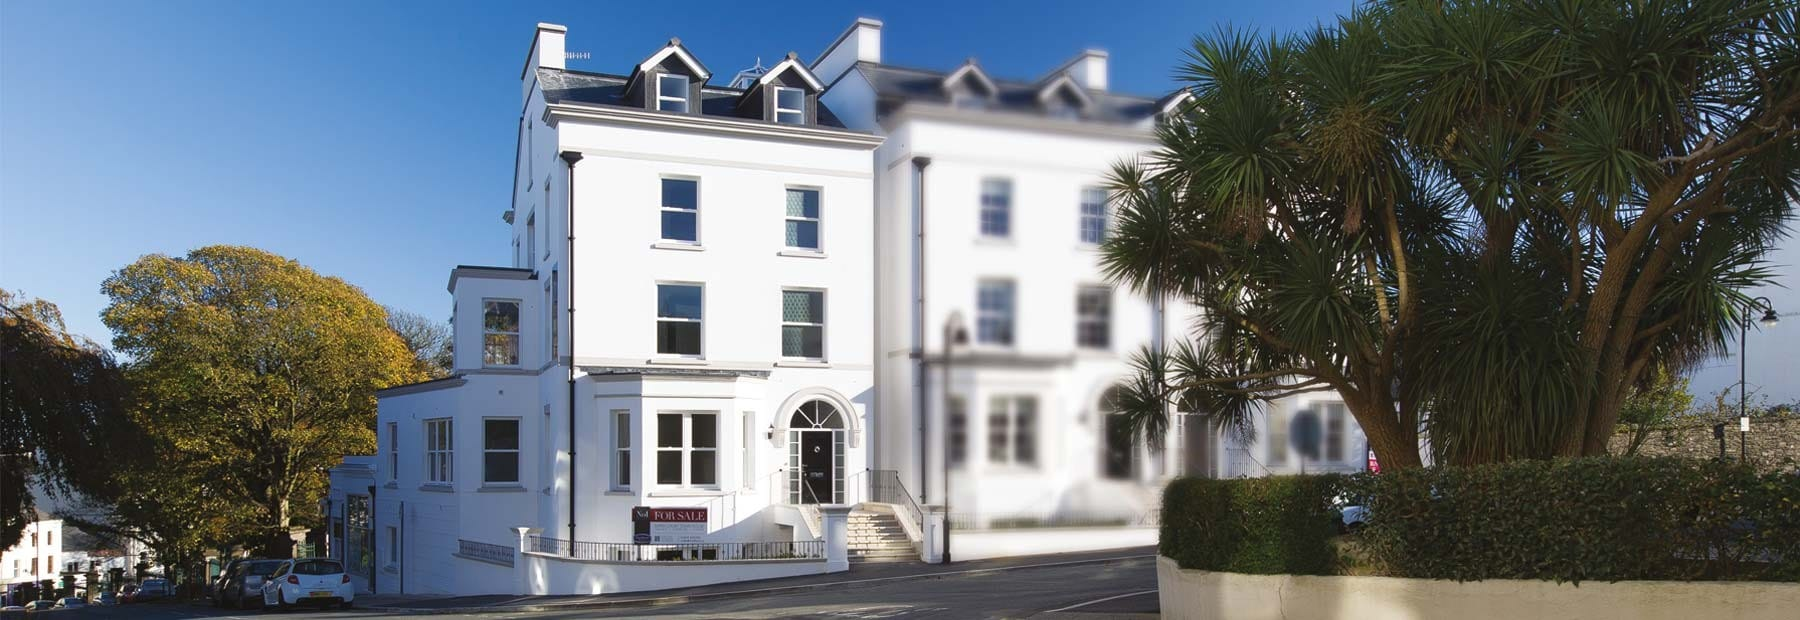 5 Bed Luxury Town House